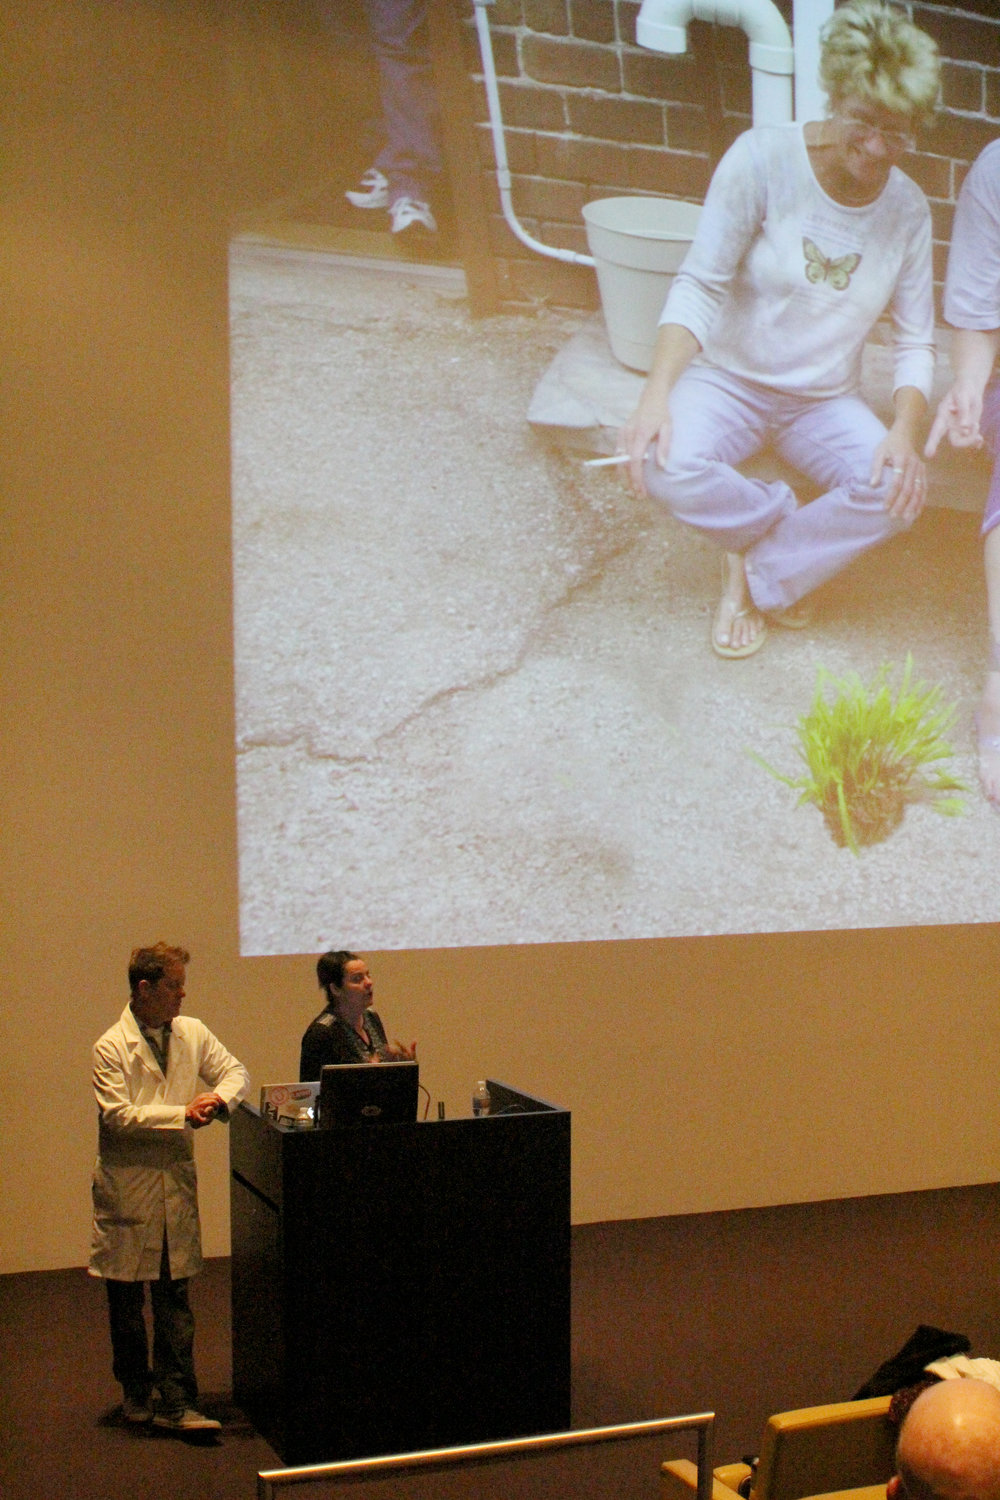 Schmuki and DesChene's artist lecture